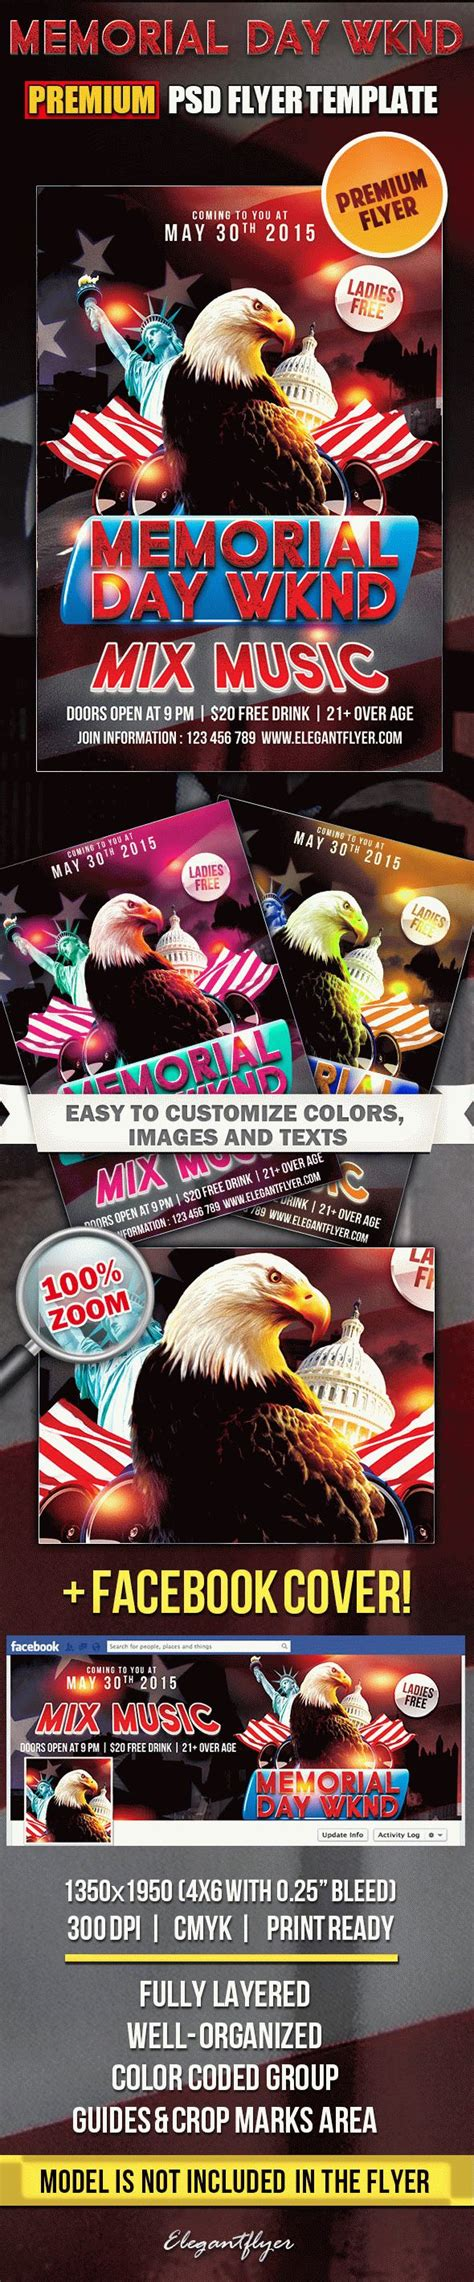 Memorial Day Wknd Flyer Psd Template By Elegantflyer Free Funeral Flyer Template Psd